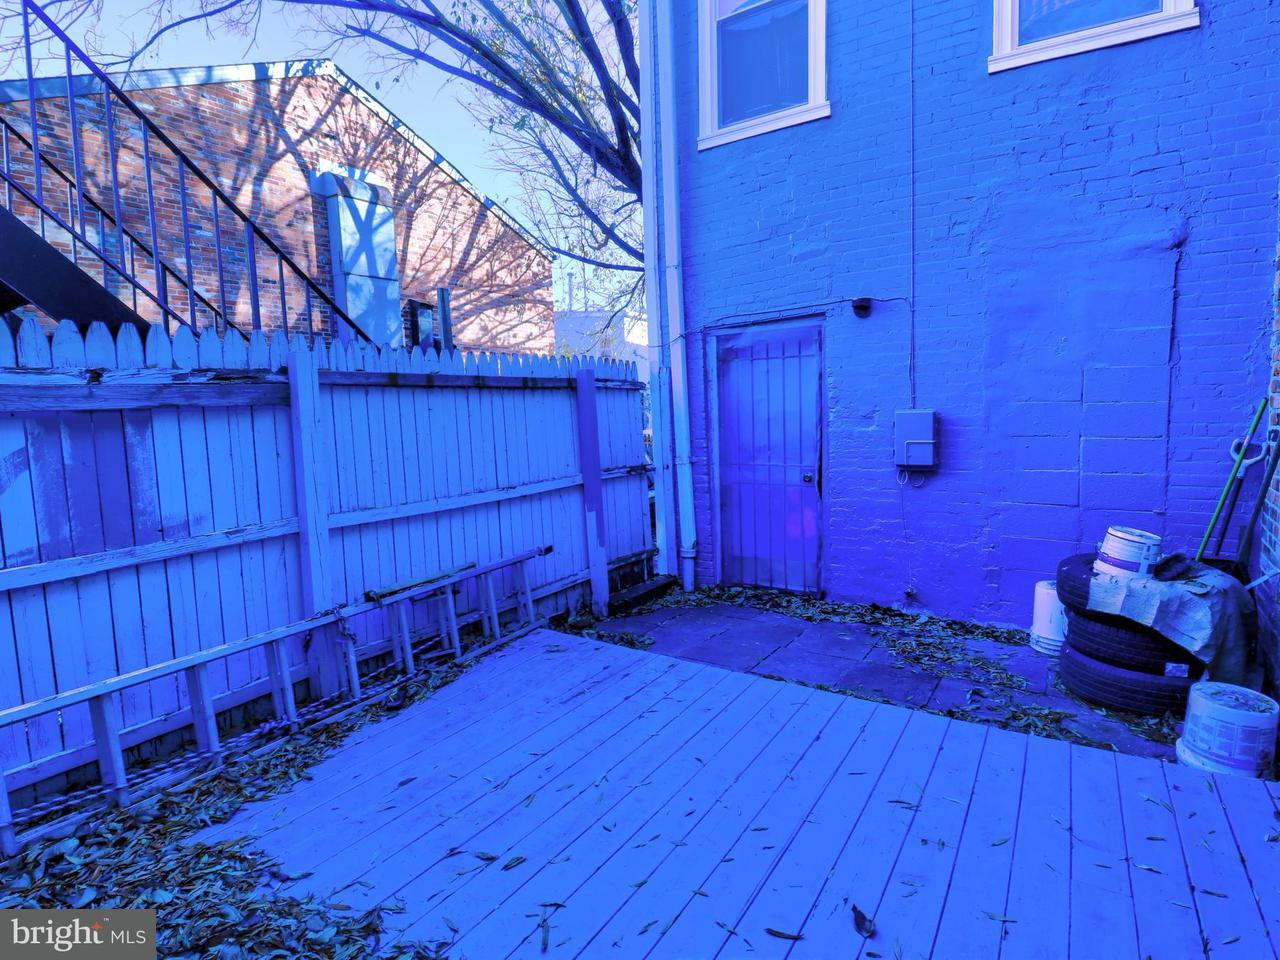 Additional photo for property listing at 401 Franklin St Nw 401 Franklin St Nw Washington, コロンビア特別区 20001 アメリカ合衆国